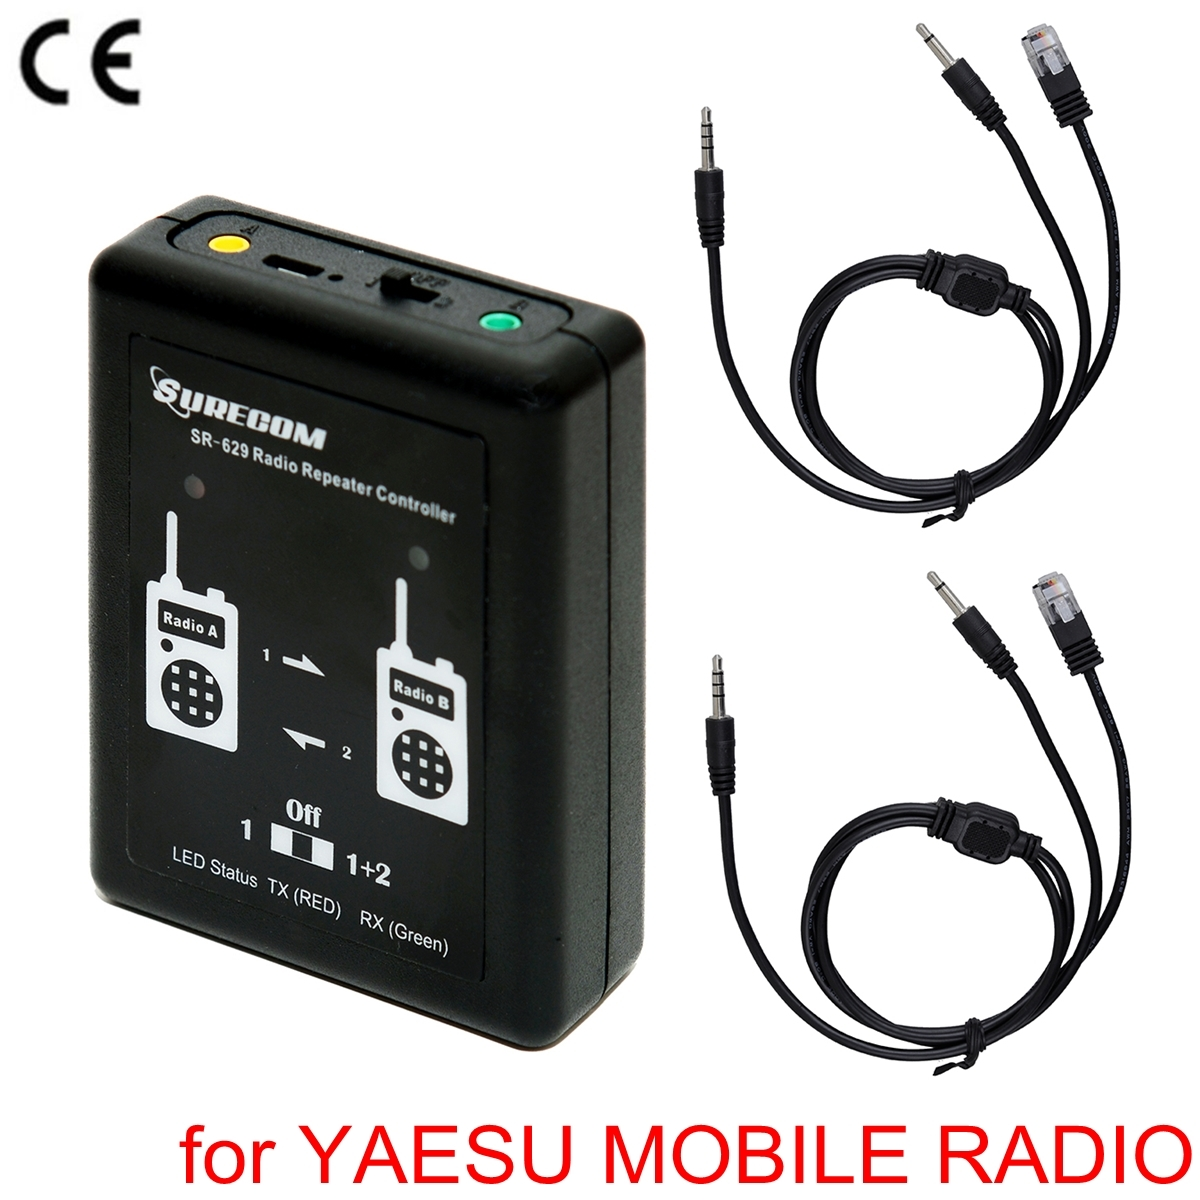 SURECOM SR-629 2 in 1 Duplex Repeater Controller For YAESU FT-2800 FT-8900 RADIO